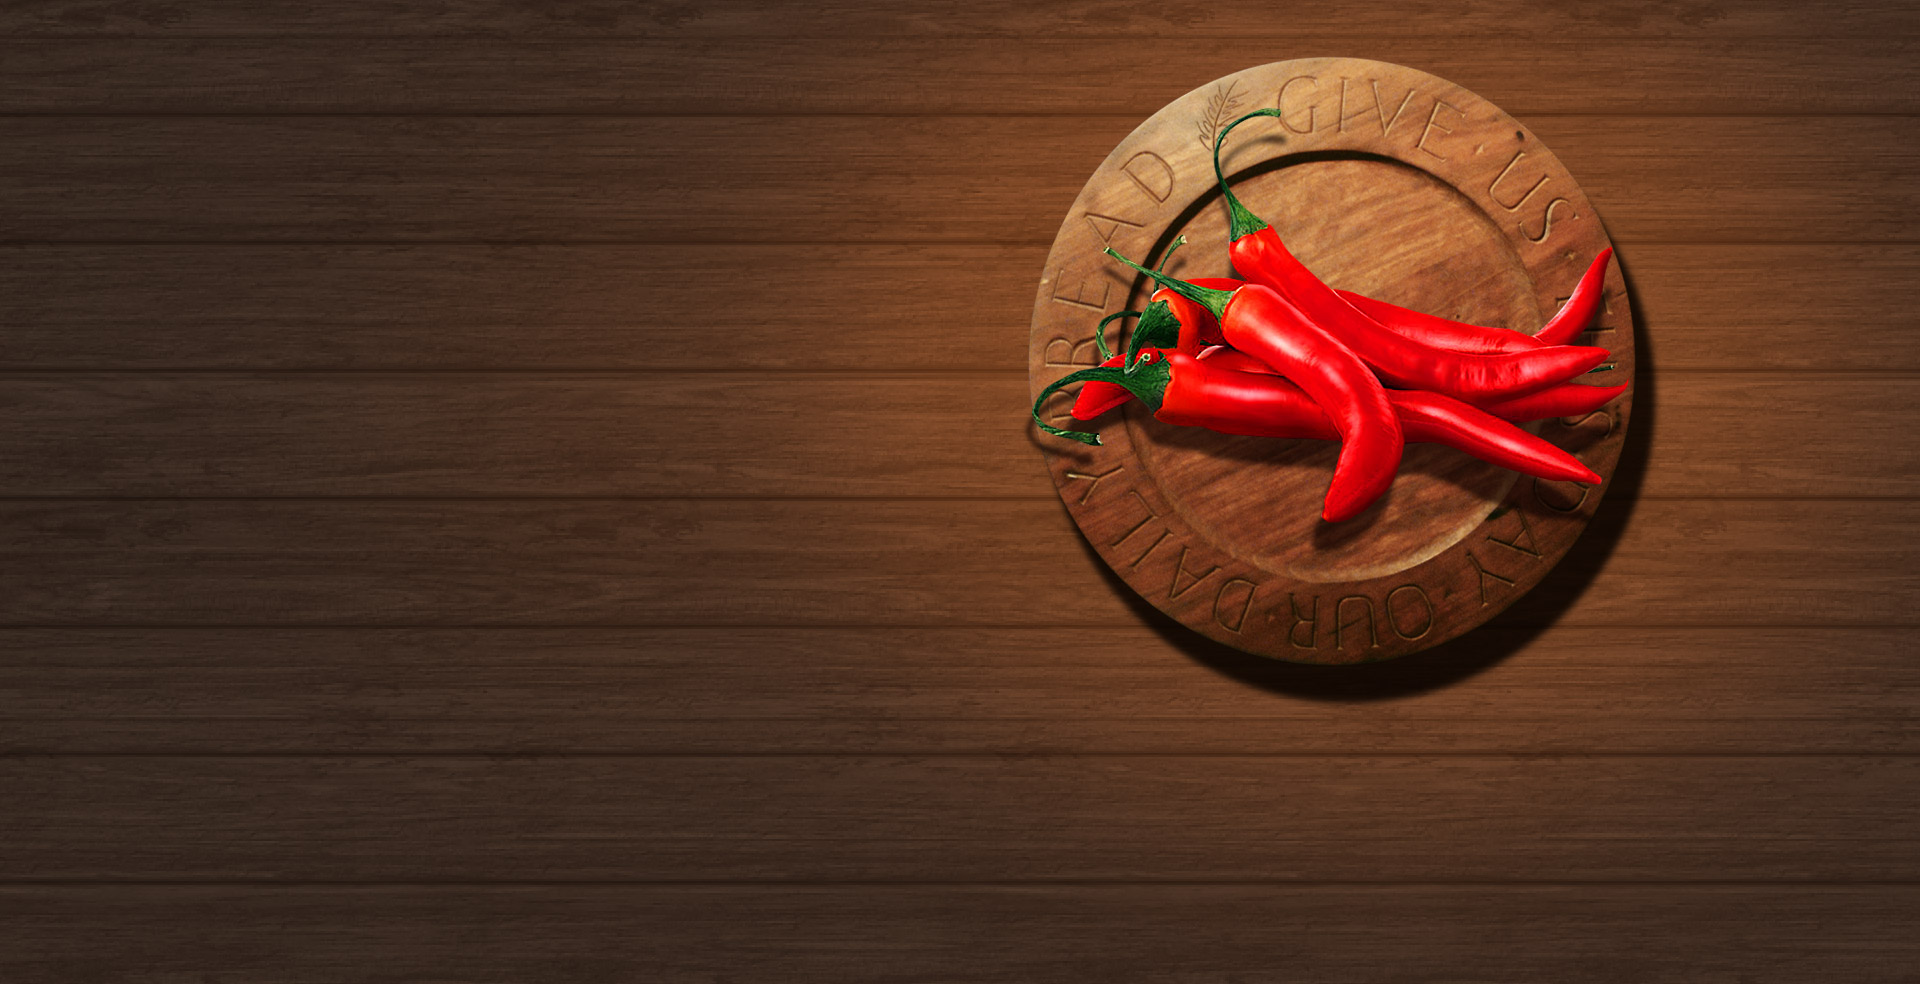 home_pizza_about_bg